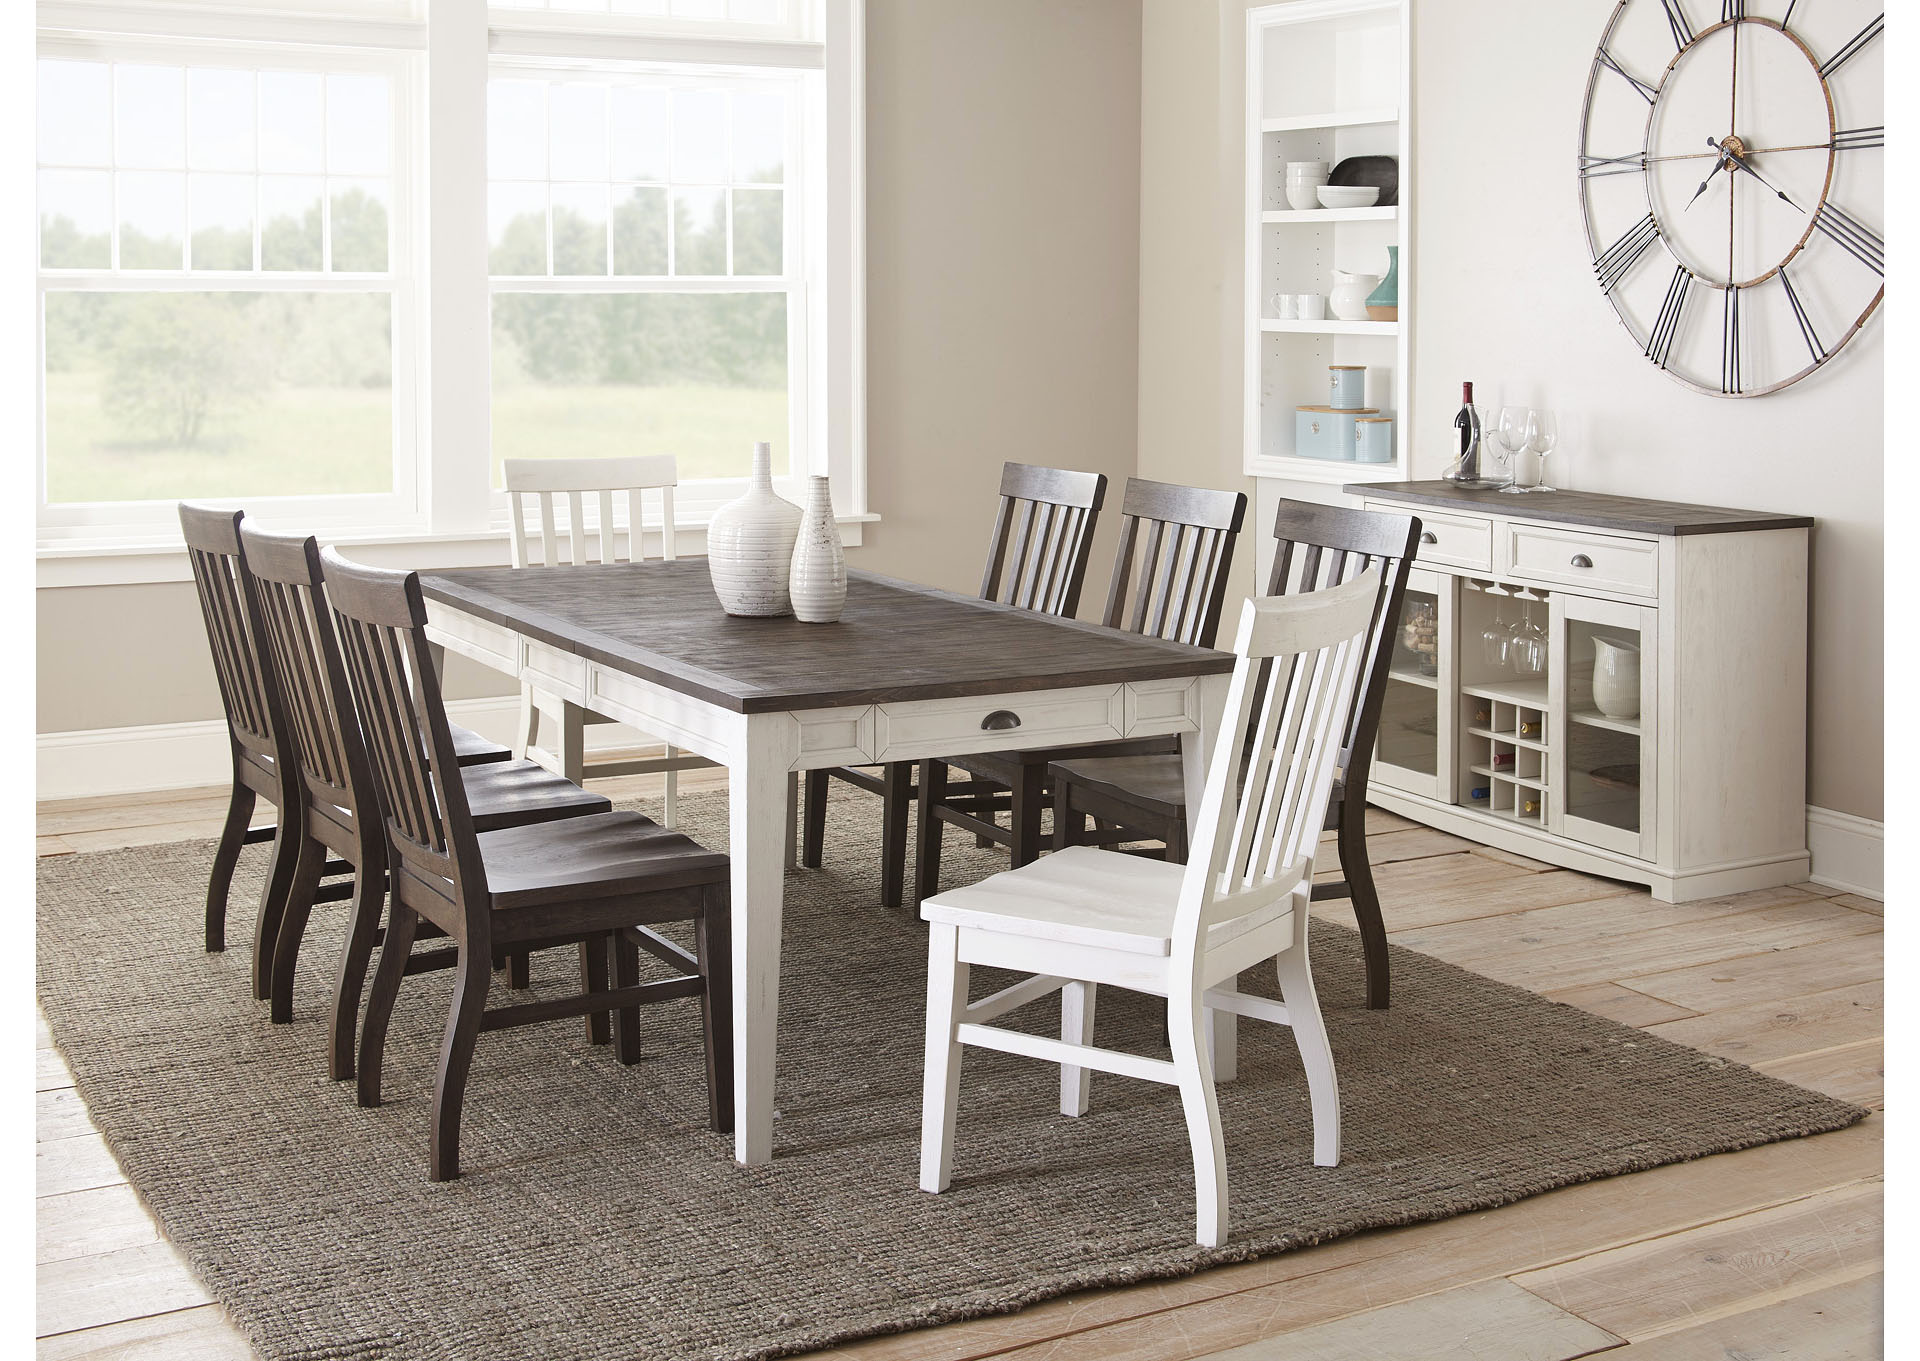 Cayla Two Tone Rectangular Dining Set W, White Dining Room Table Seats 8